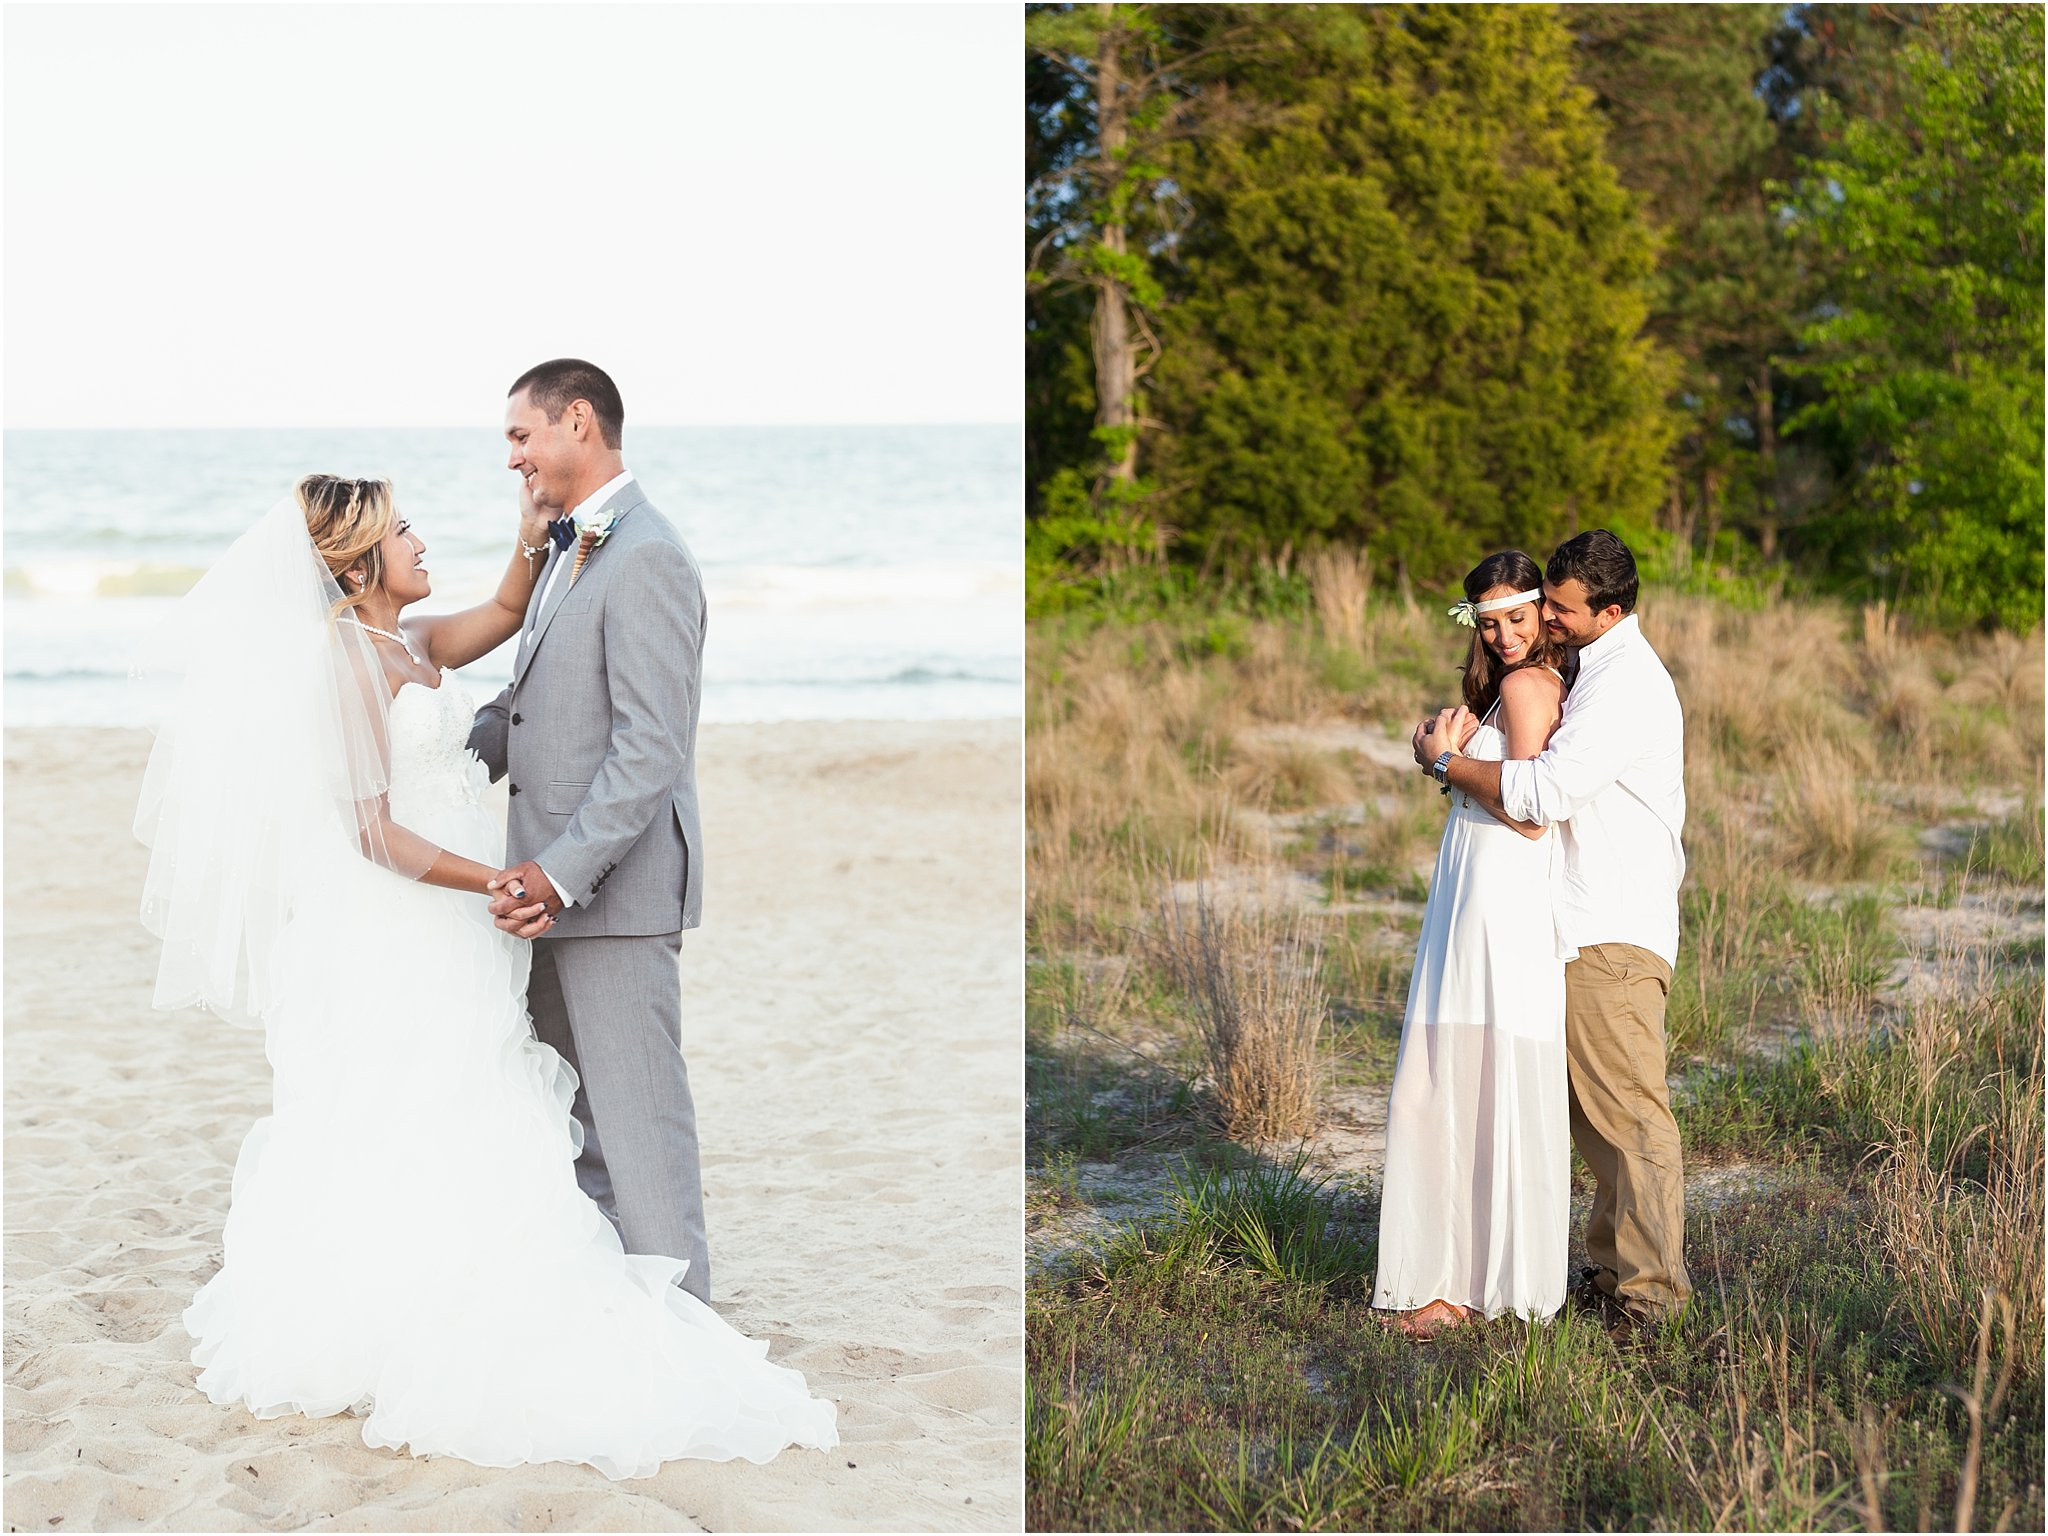 jessica_ryan_photography_virginia_beach_virginia_wedding_love_candid_intimate_1065